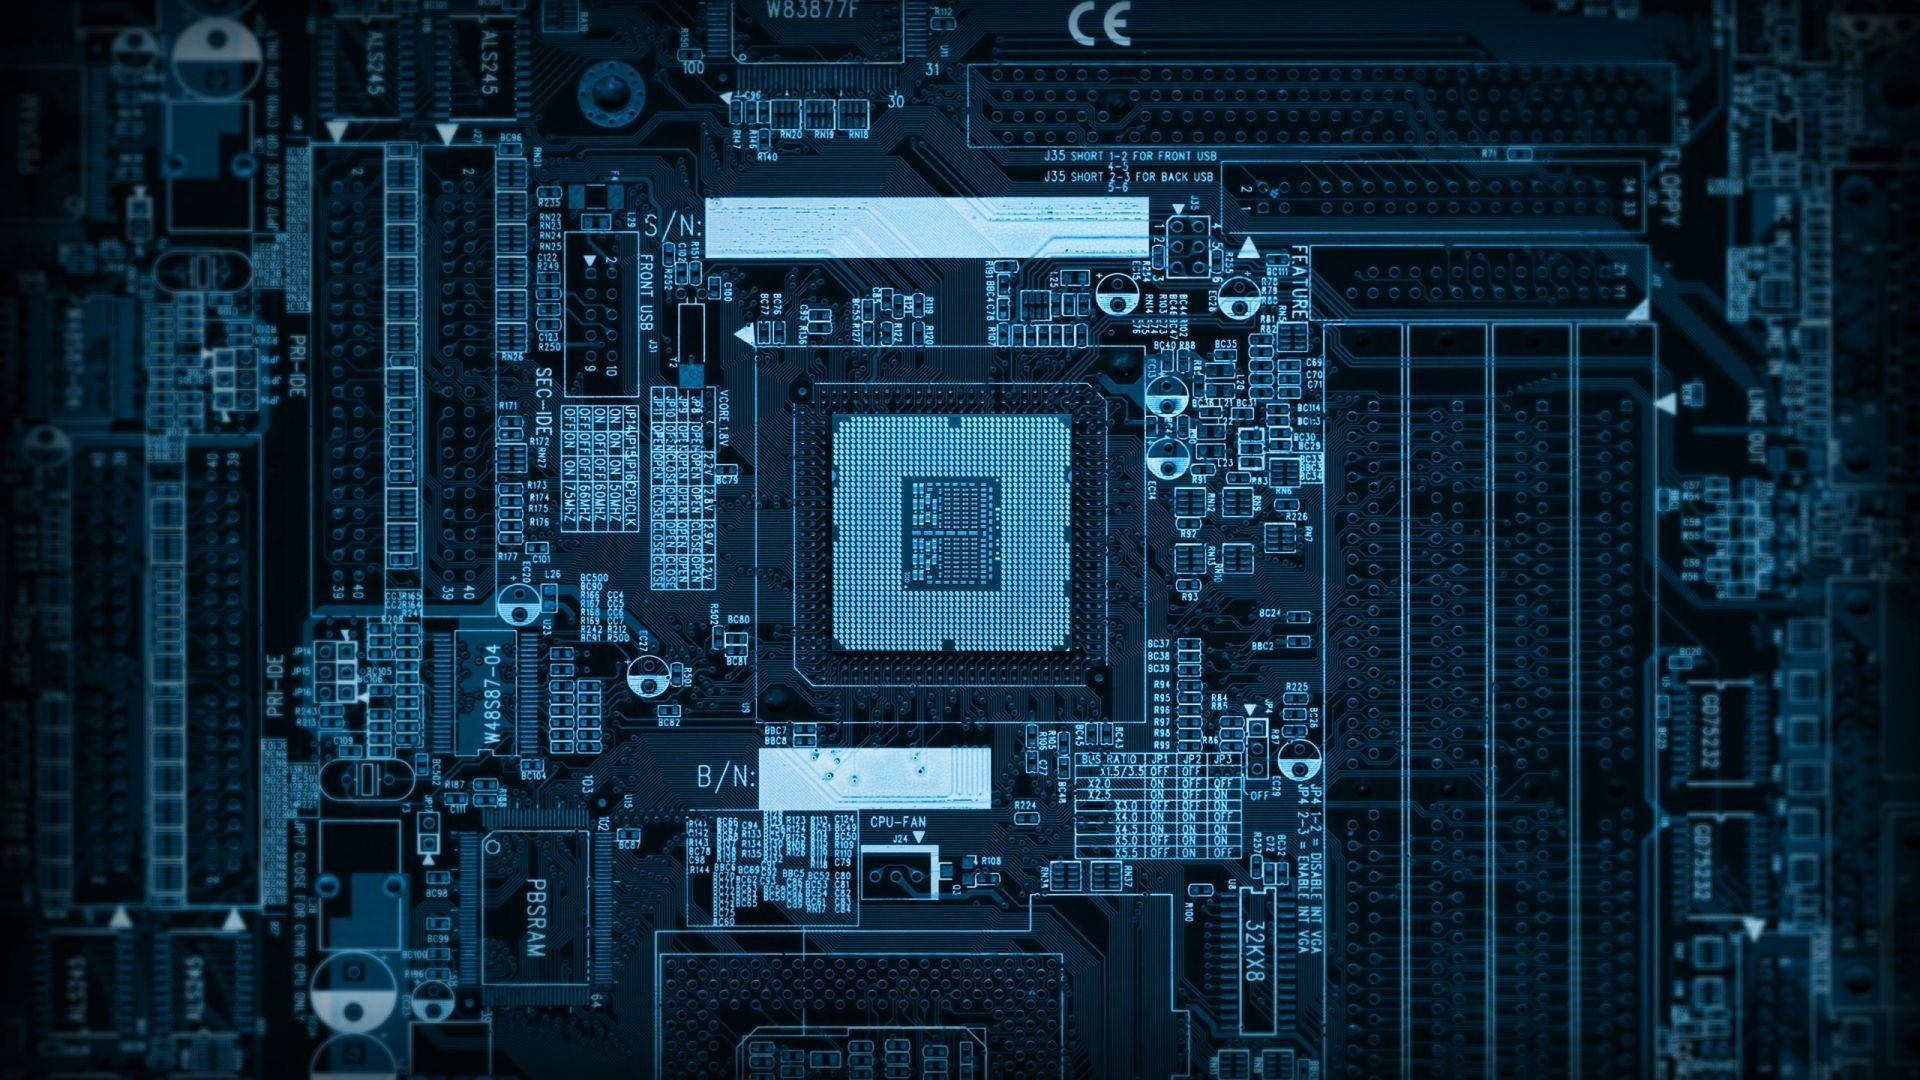 computer tech wallpaper 05 - [1920x1080]